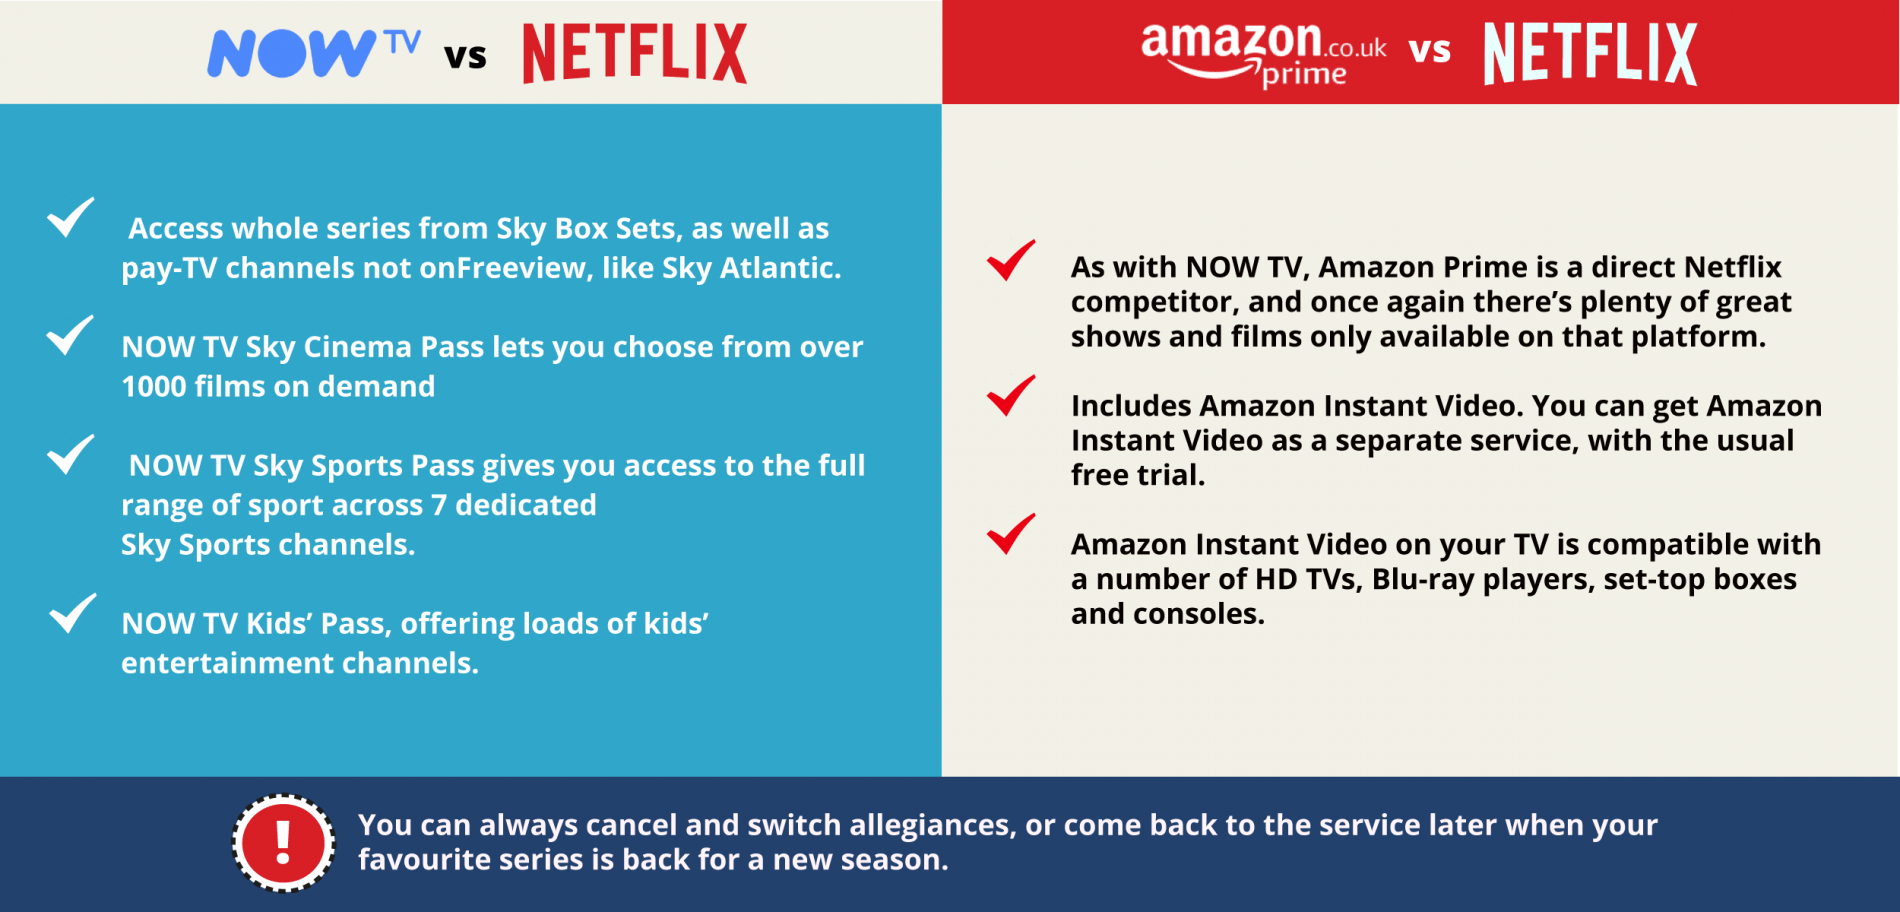 NOW TV vs Netflix & Amazon Prime vs Netflix